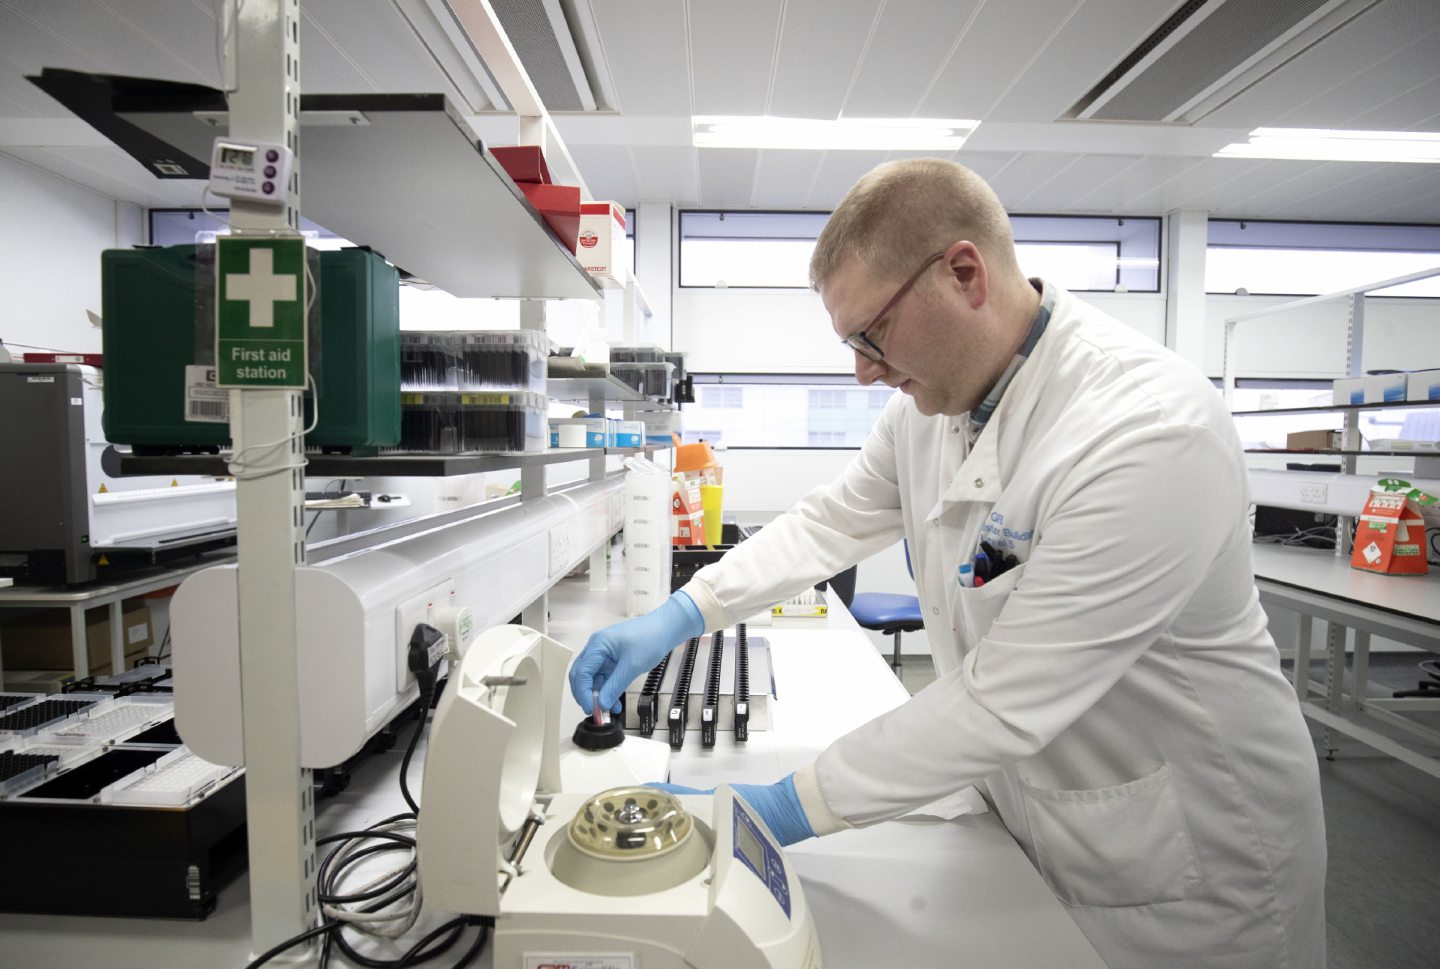 Clinical support technician Douglas Condie extracts viruses from swab samples so that the genetic structure of a virus can be analysed and identified in the coronavirus testing laboratory.